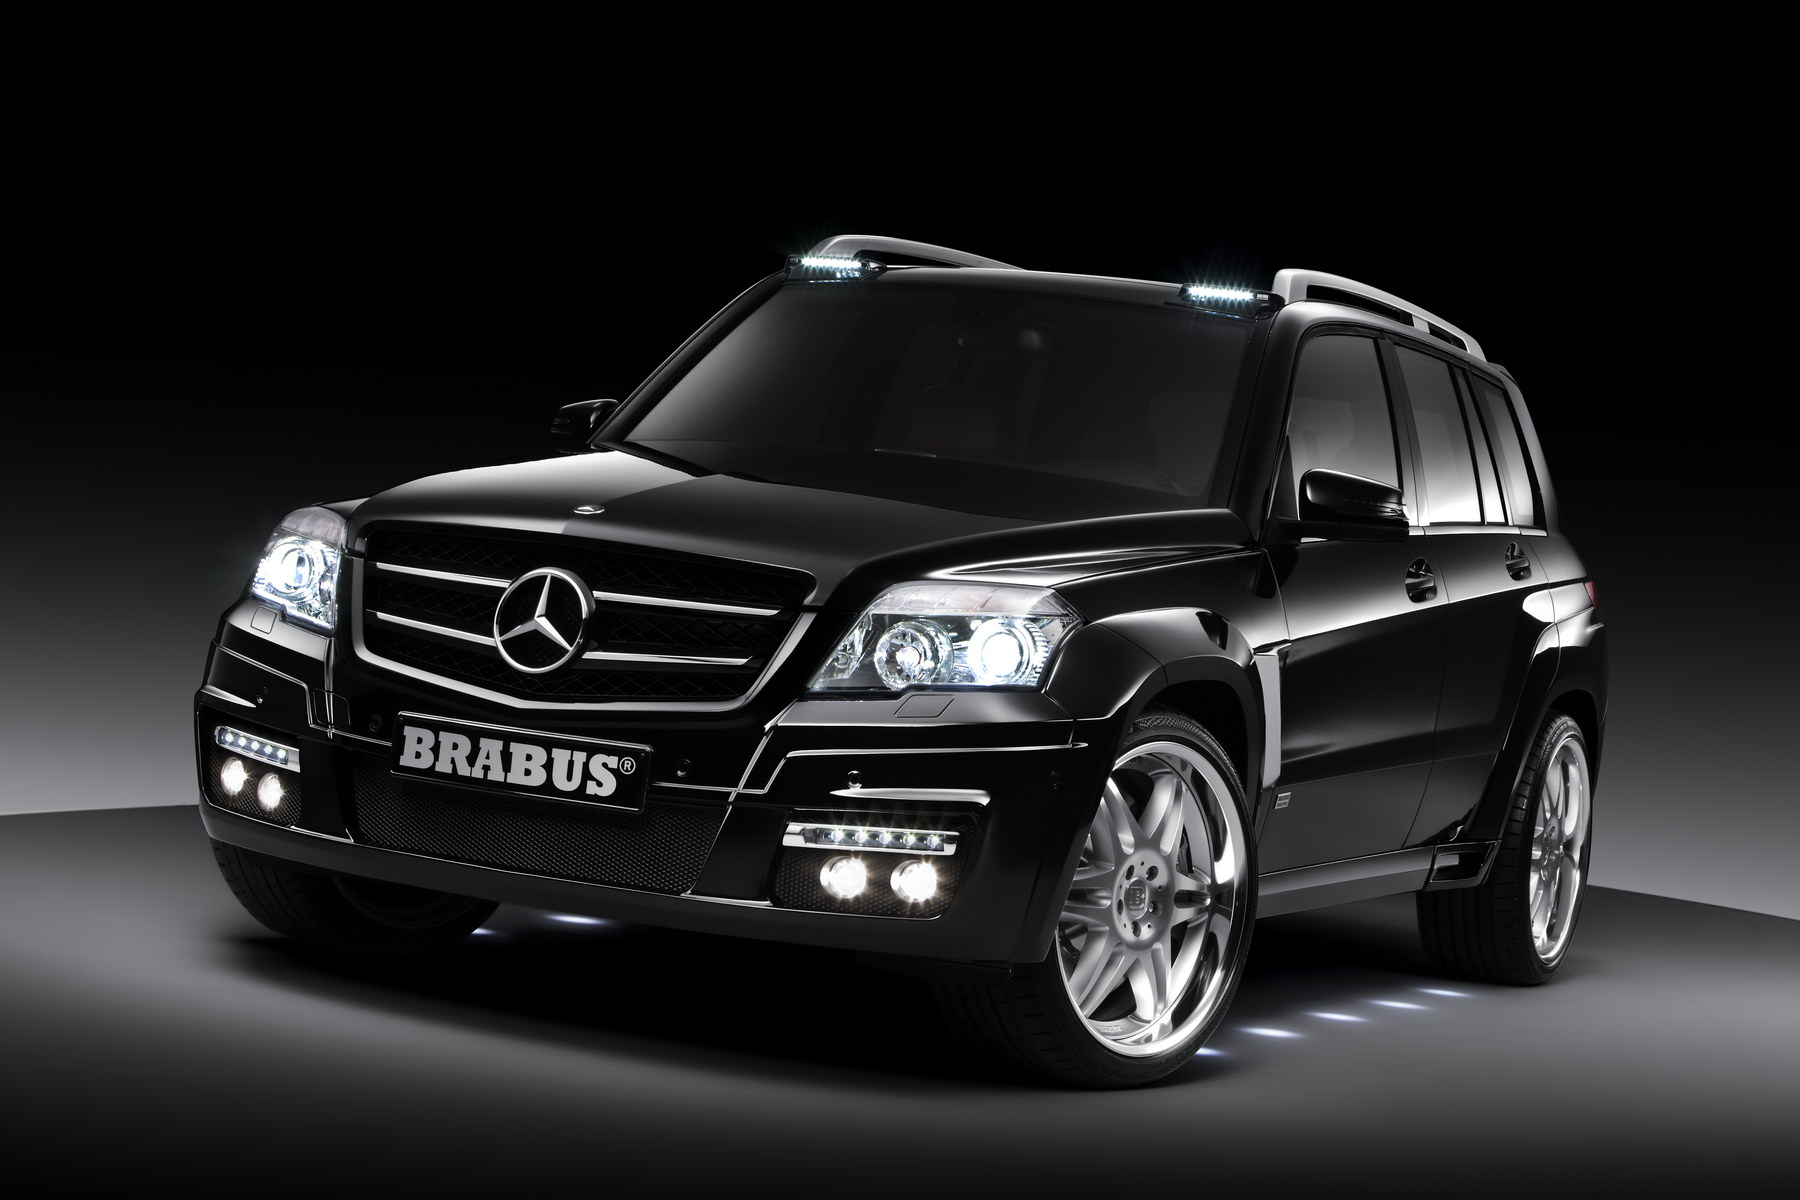 Mercedes benz glk brabus widestar mercedes benz for Mercedes benz glk350 amg